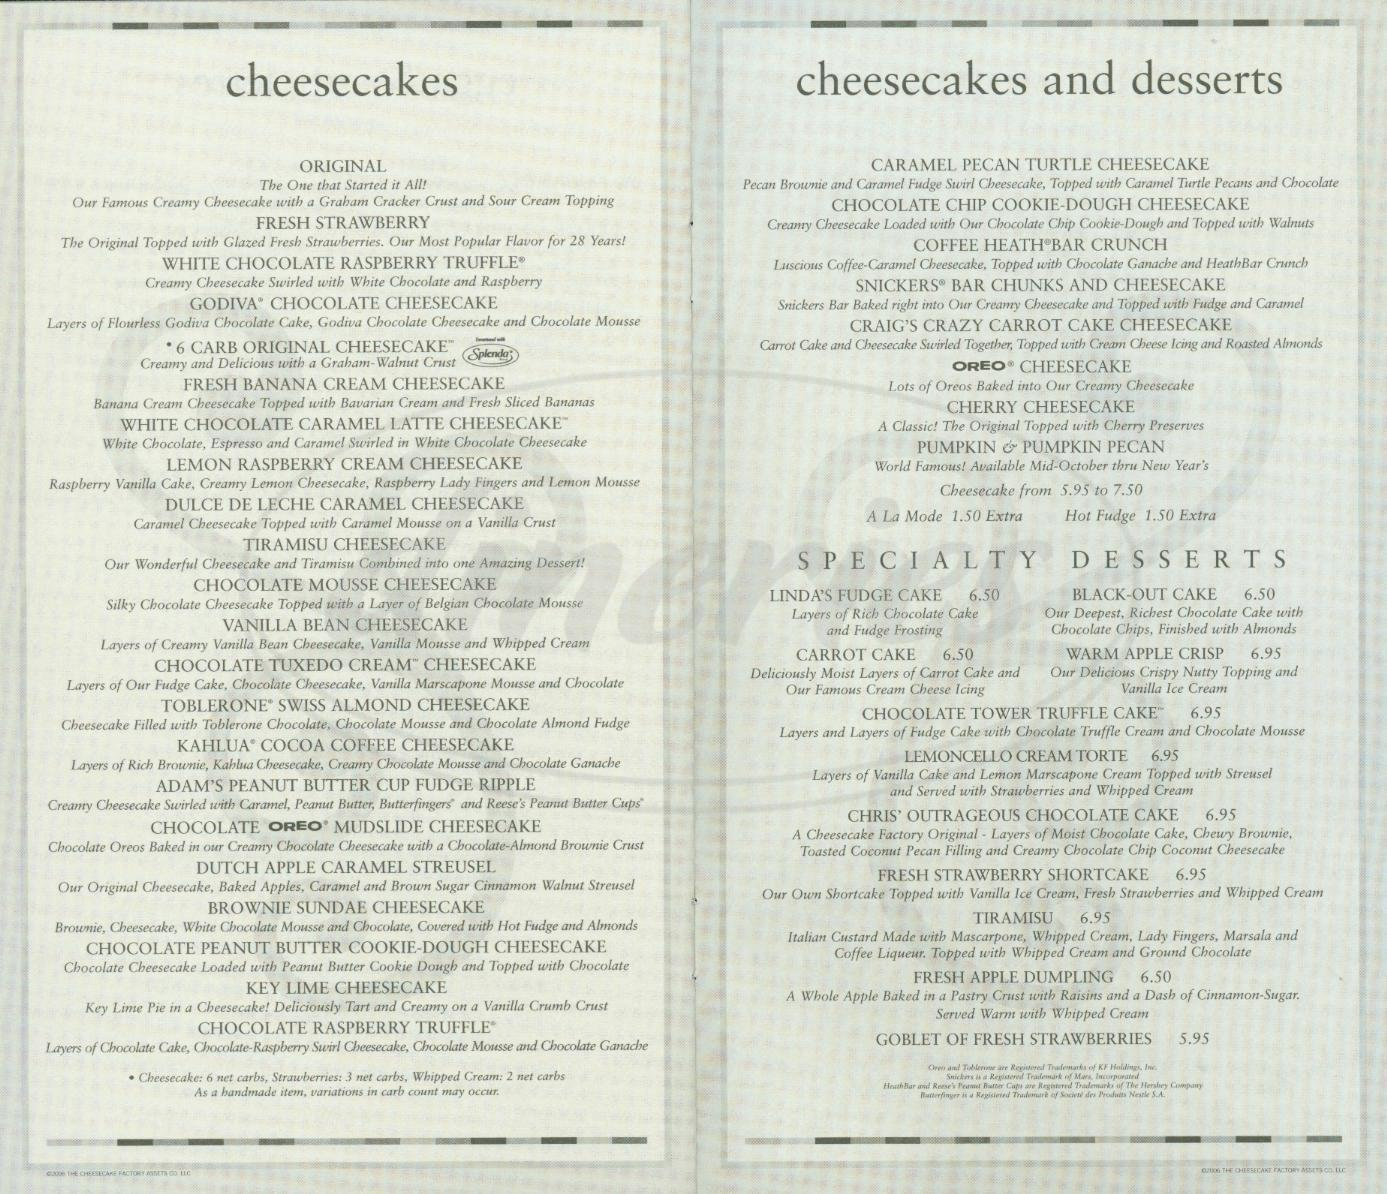 Menu for The Cheesecake Factory: Reviews and photos of Shrimp Scampi, Chicken Bellagio, Miso Salmon* Skip to Search Form Take Out Menu; Small Plates & Snacks Stuffed Mushrooms. Fontina and Parmesan Cheese, Garlic and Herbs in a Wine Sauce. 8 reviews.